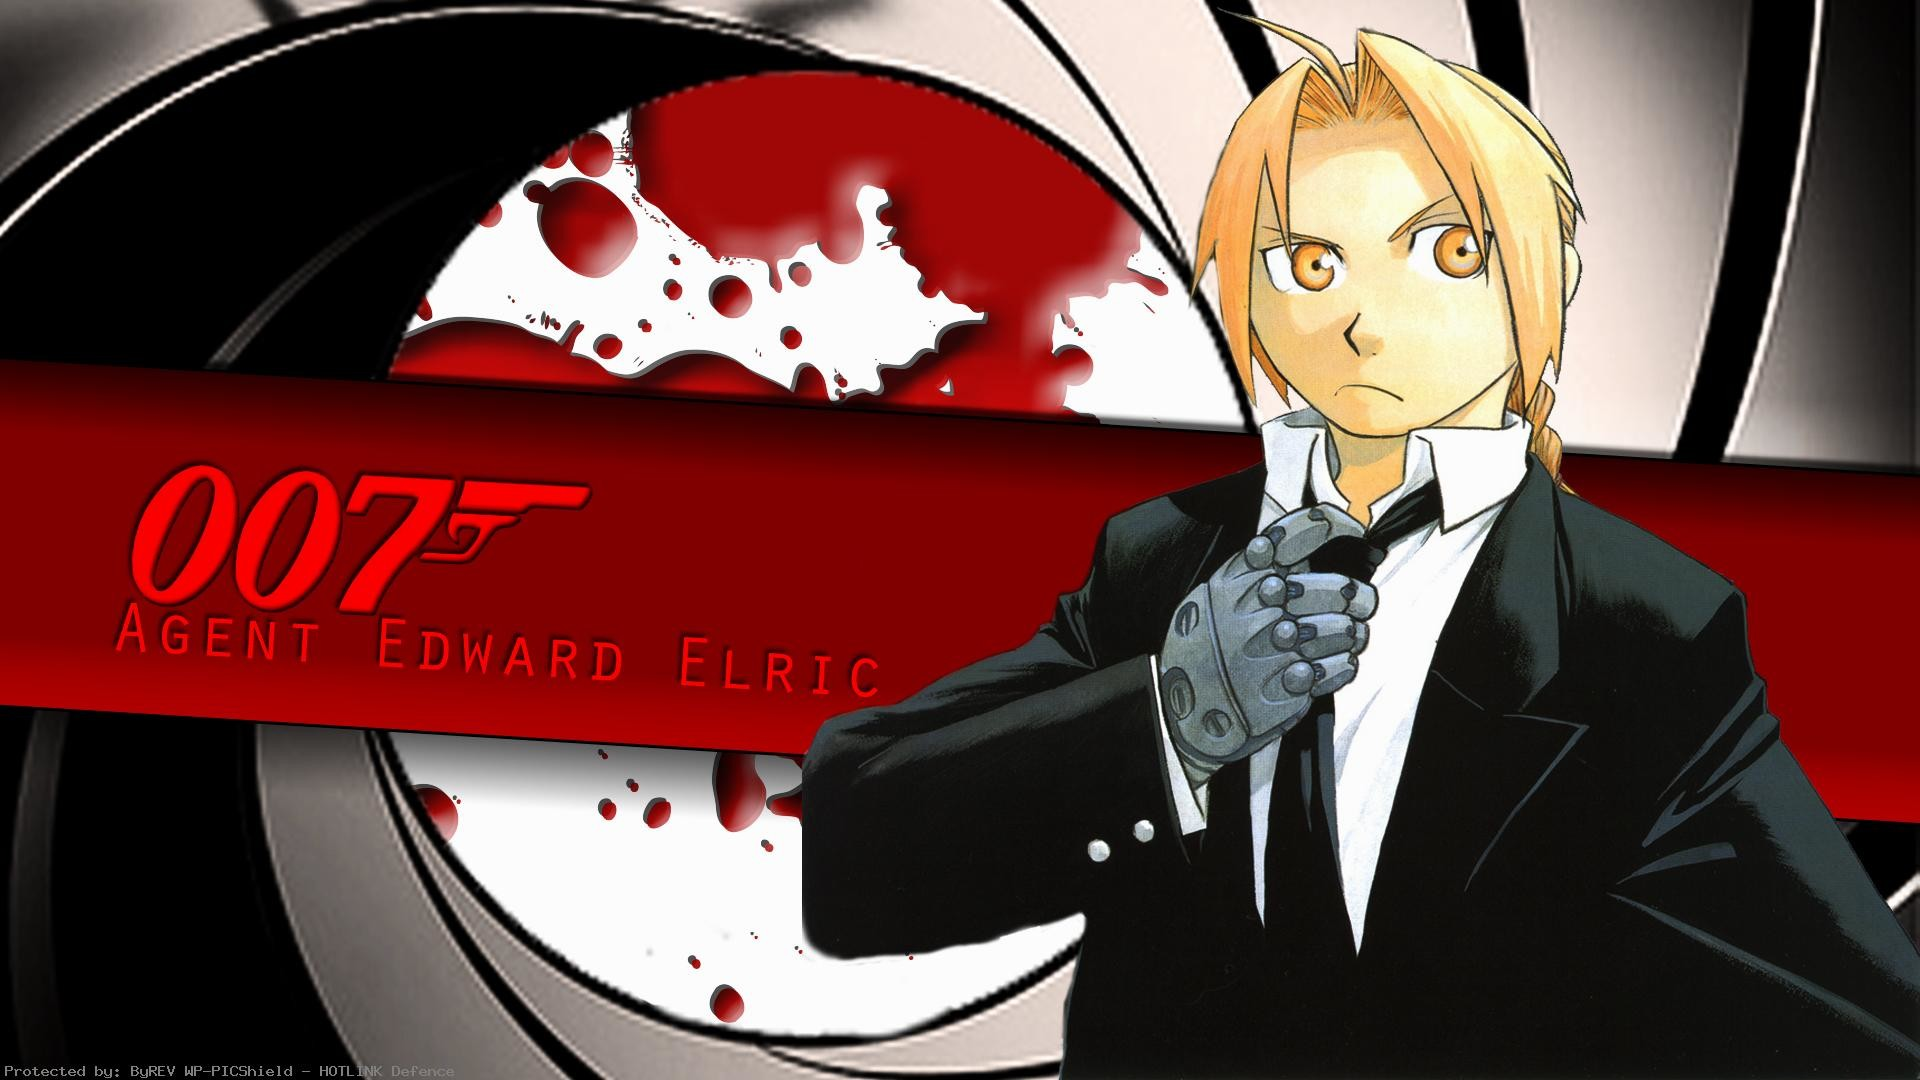 Agent-Edward-Elric-by-SerialKiller-wallpaper-wp8002335